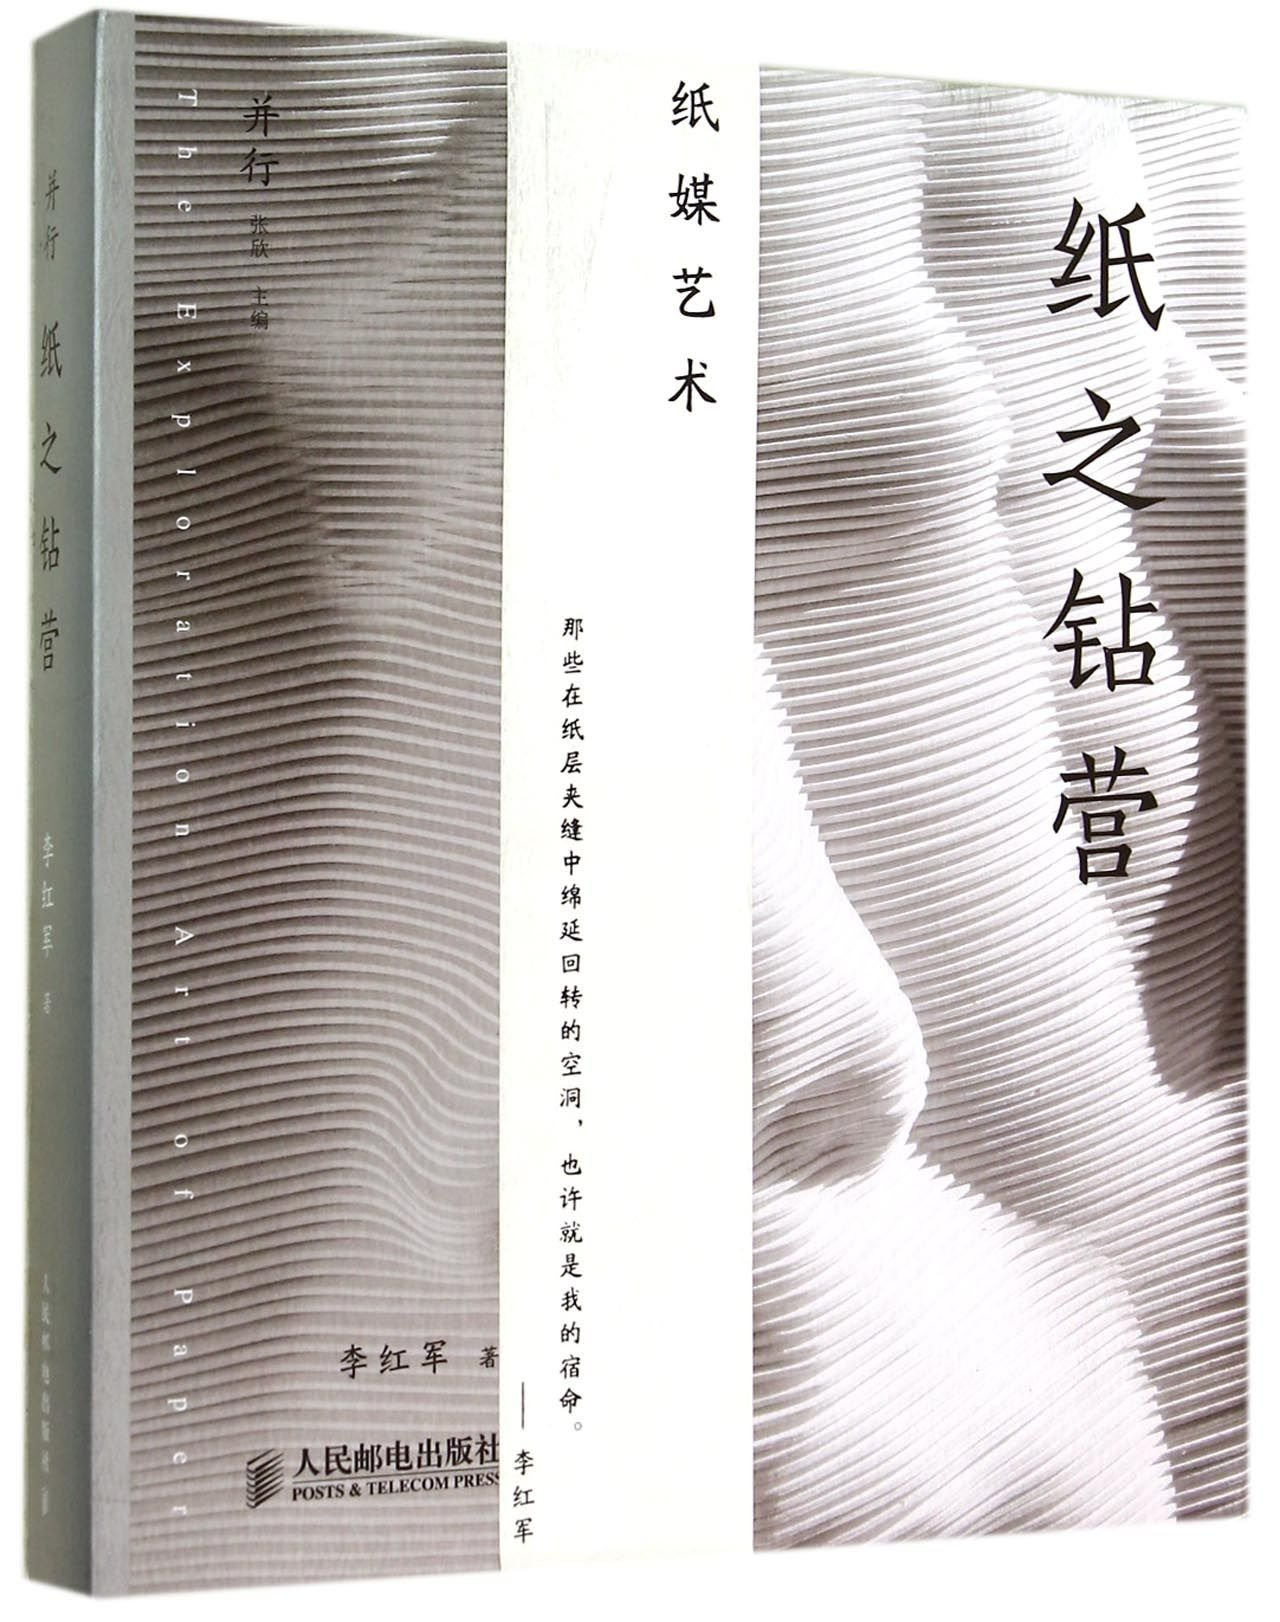 The Exploration Art of Paper (Chinese Edition) pdf